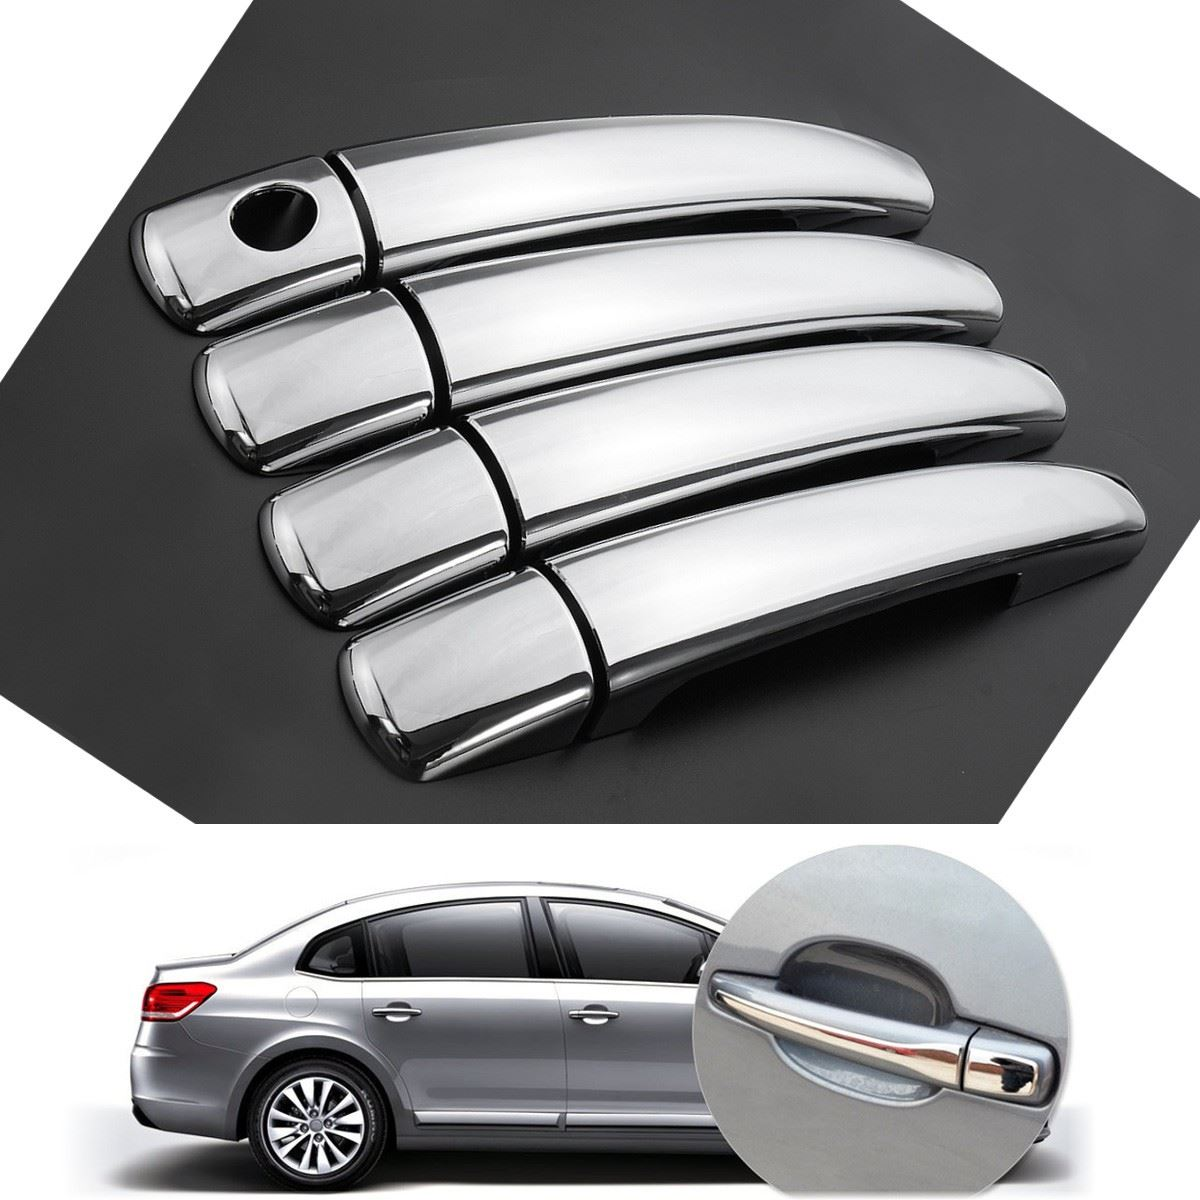 1 Set CHROME DOOR HANDLE COVER TRIM FOR PEUGEOT 207 308 407 CITROEN C4 C6 C4 PICASSO